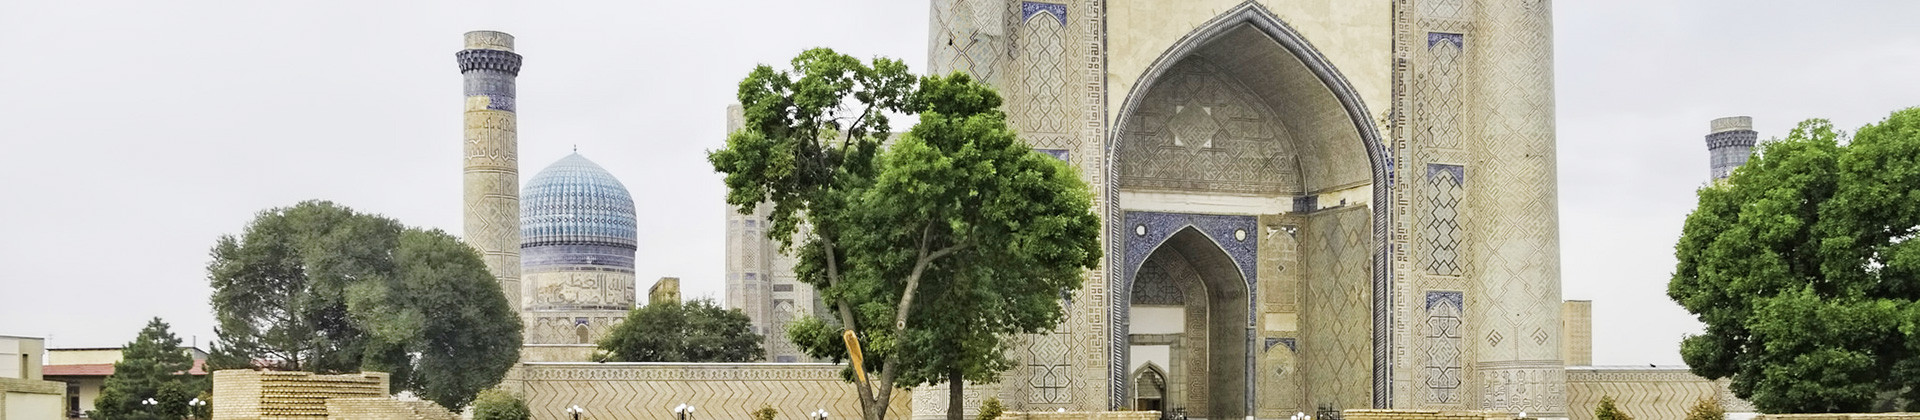 One Day Tour in Samarkand from Tashkent by train - 1